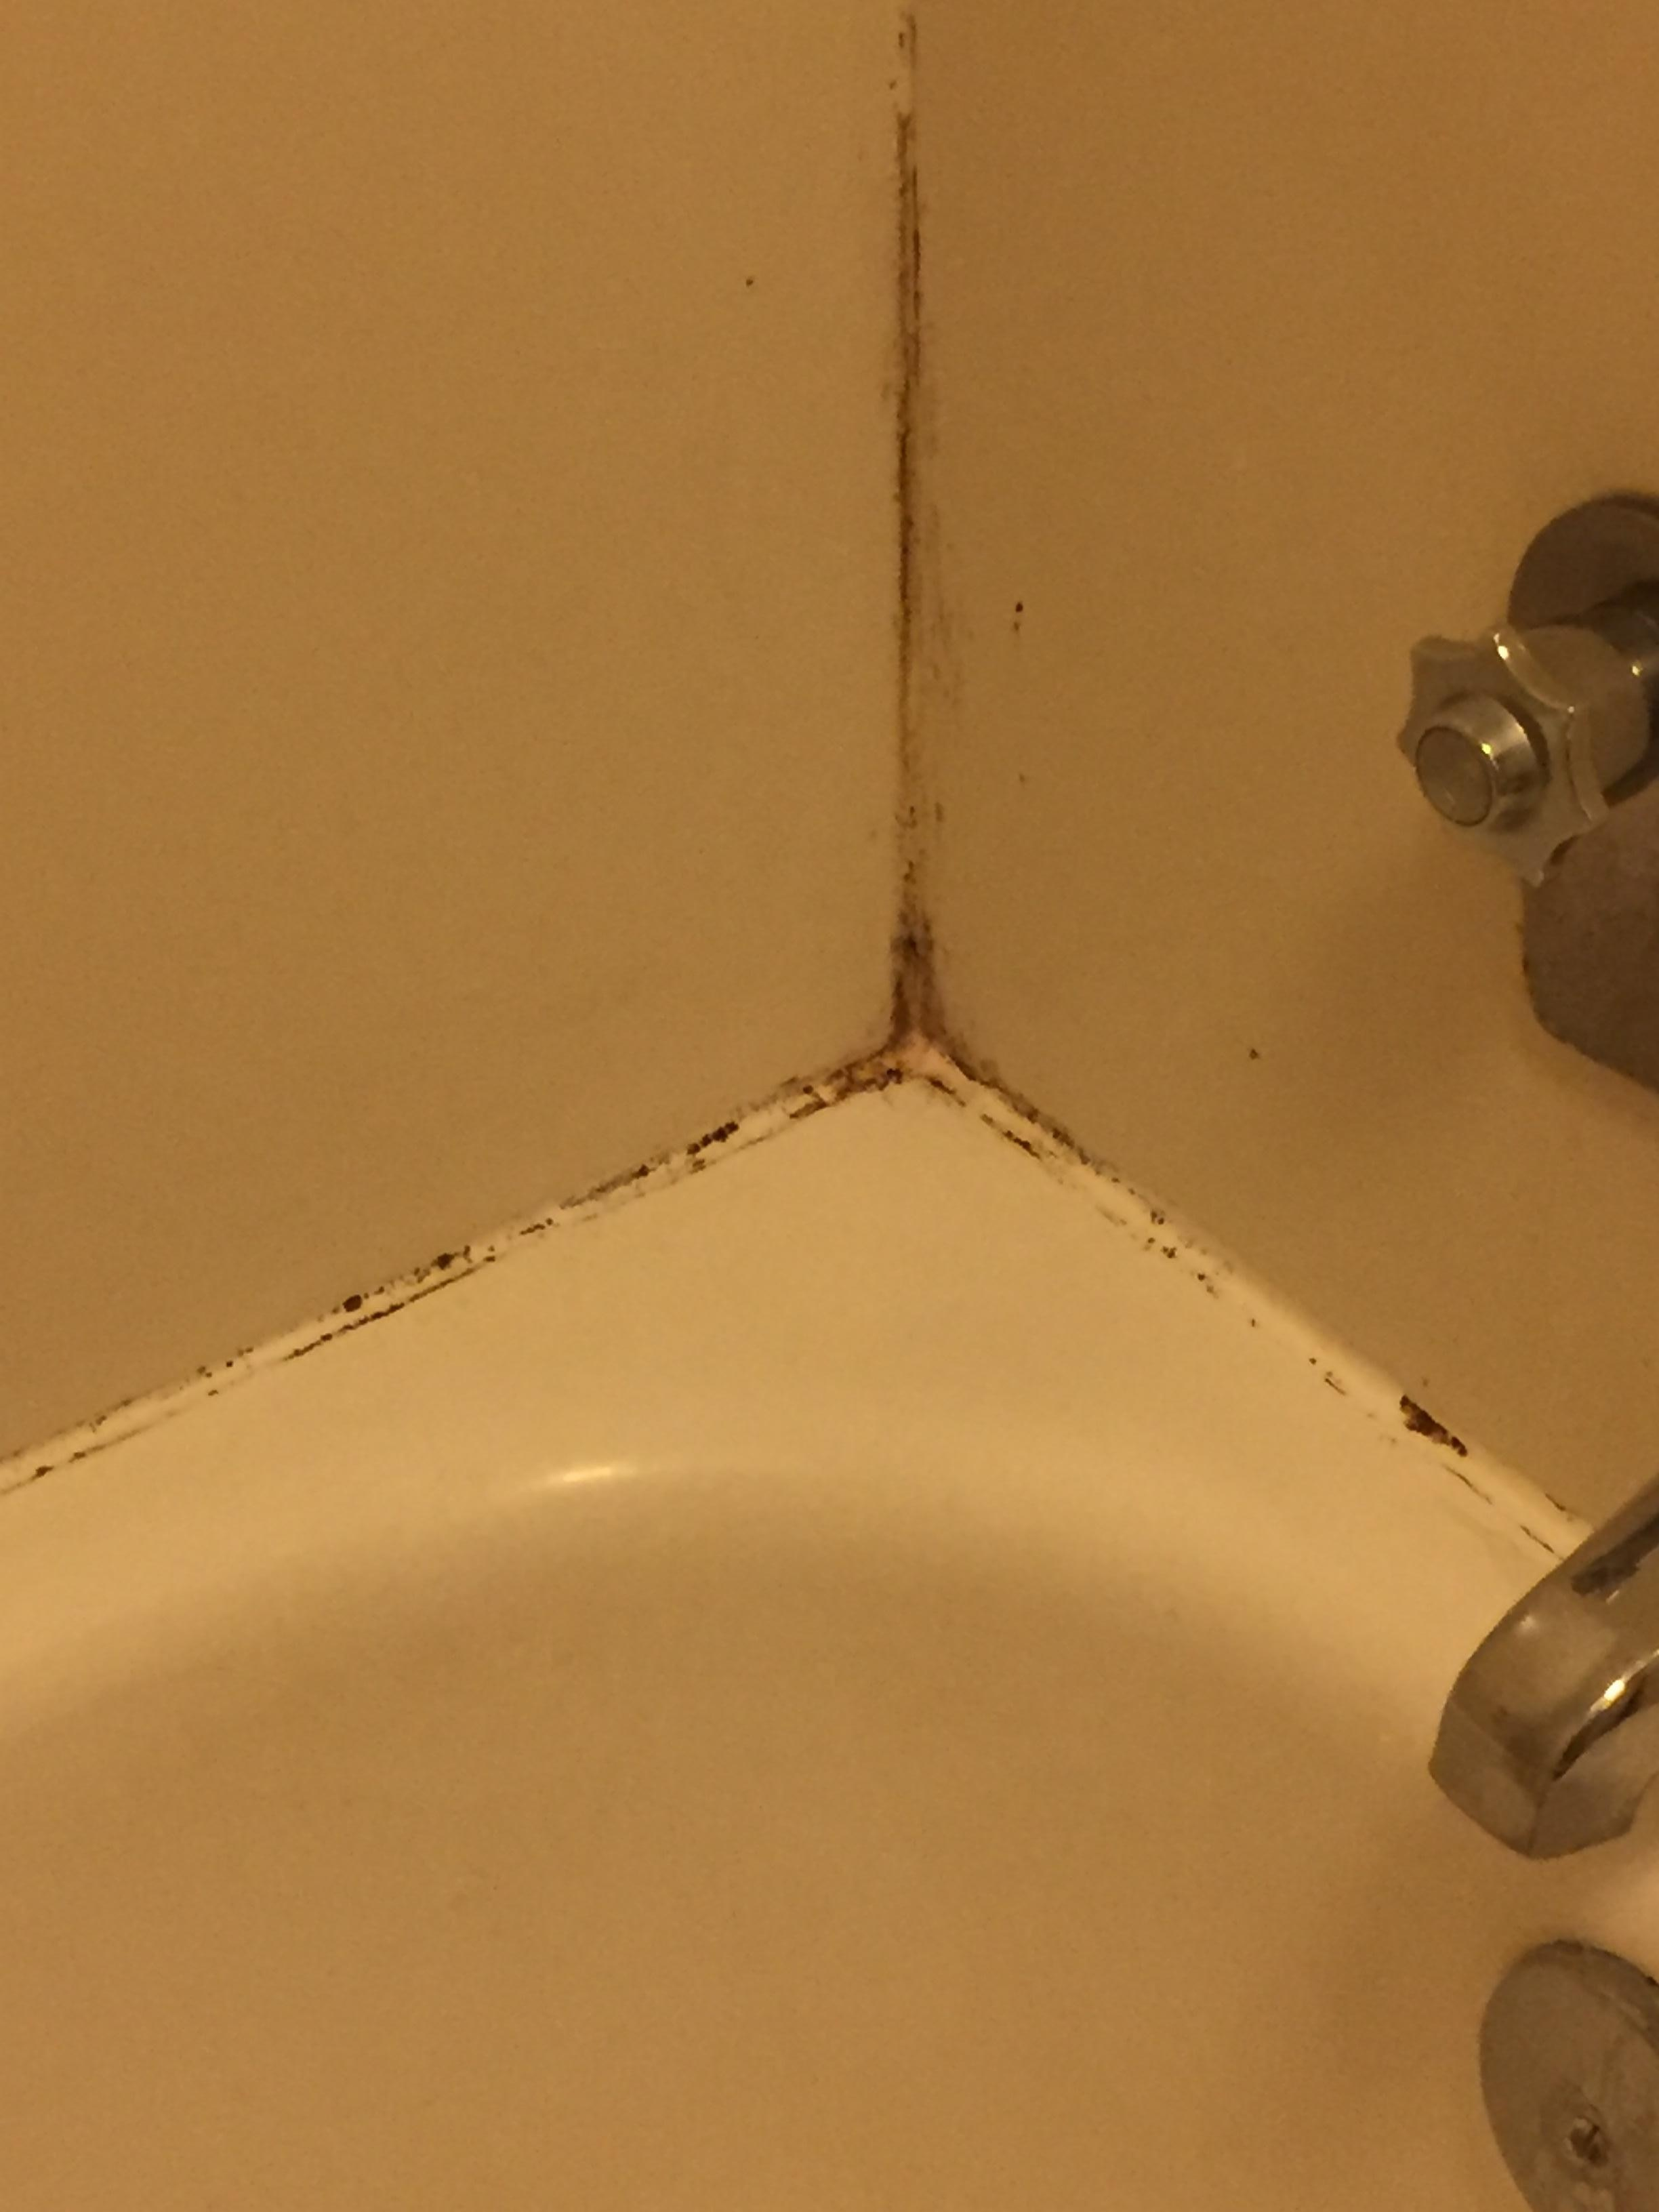 One of the nasty corners of the tub